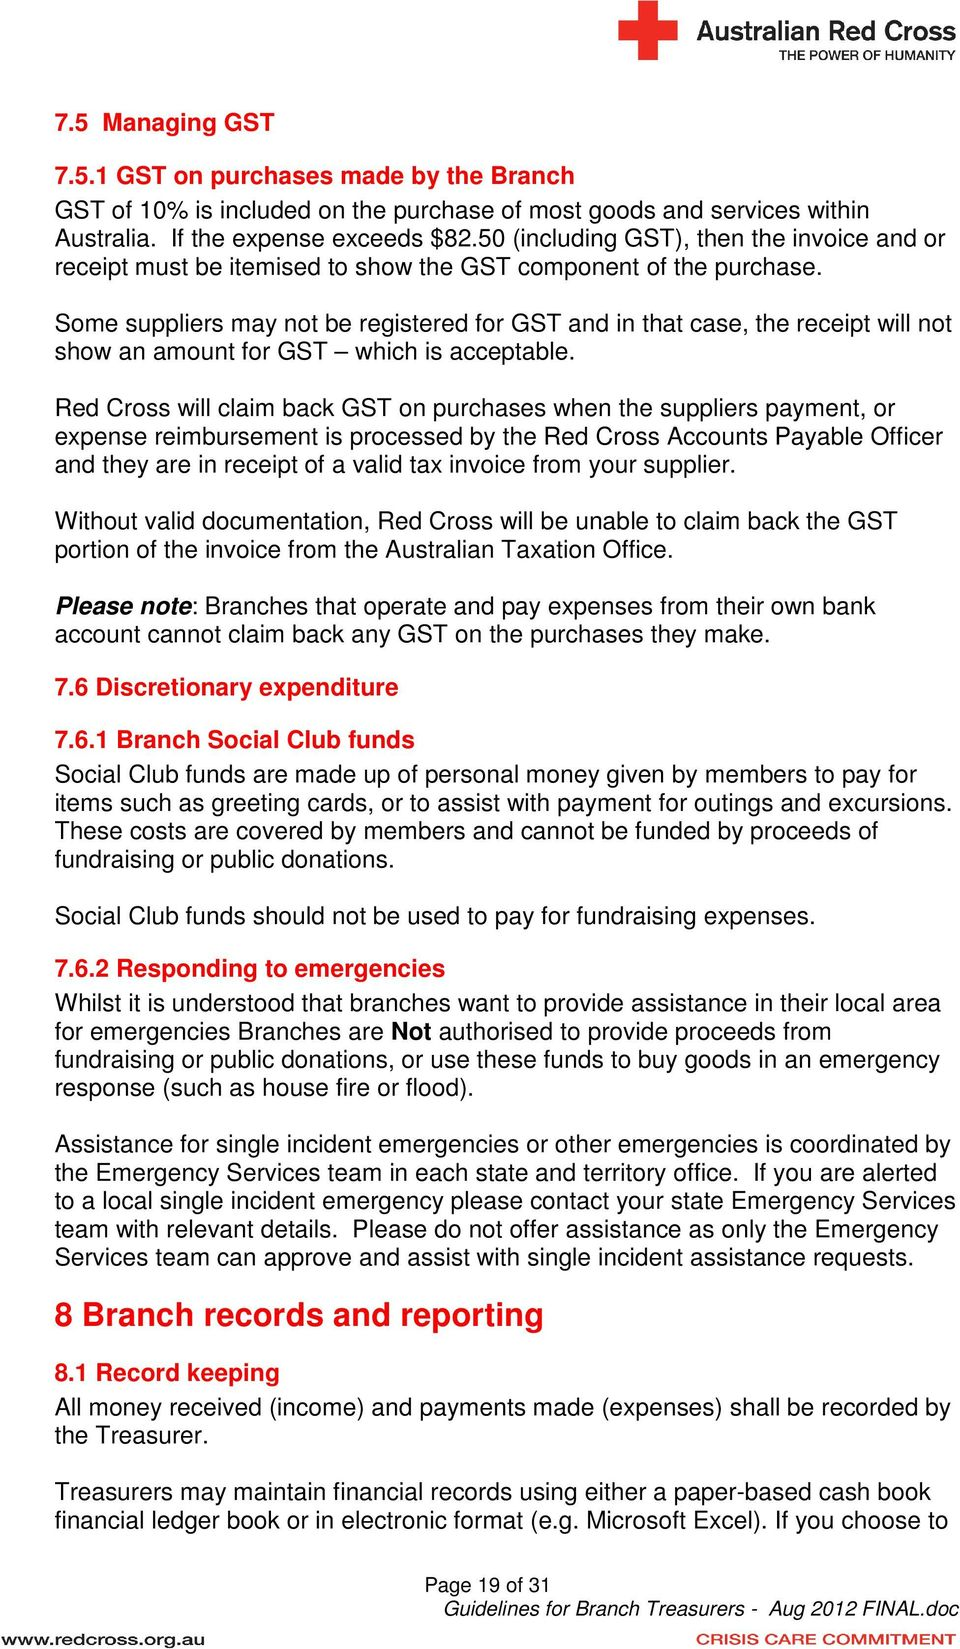 Some suppliers may not be registered for GST and in that case, the receipt will not show an amount for GST which is acceptable.